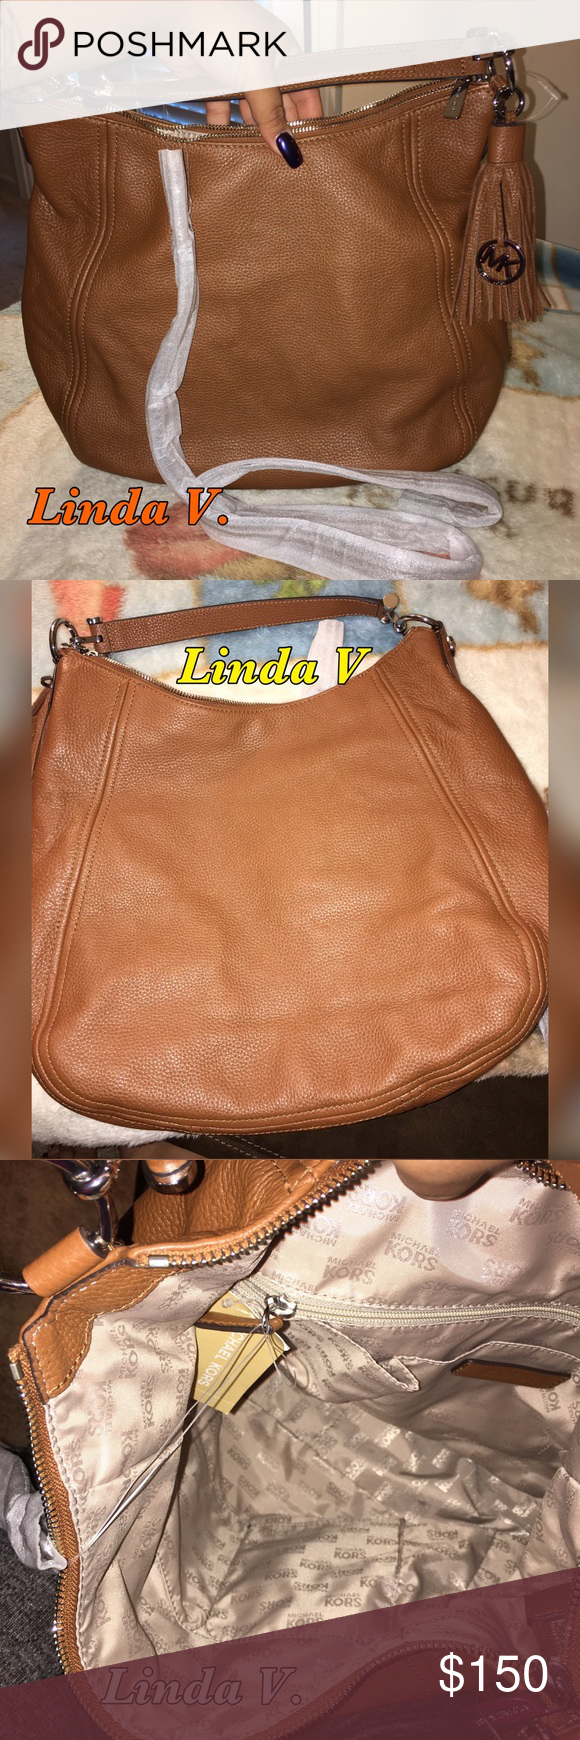 """Michael Kors Frances XLarge Leather Shoulder bag 📦NWT NEVER BEEN USED🎉 in great condition Great Shoulder bag NWT Michael Kors Women's Frances XLarge Leather Shoulder Handbags 👜 Luggage Color Slouchy Hobo / Shoulder bag in Pebbled Leather / Silver Hardware Exterior slip pocket / 4 internal pockets and zip compartment Removable / Adjustable Shoulder Strap Single Handle 8 """"drop Logo Liner Modern Hardware 100% AUTHENTIC. Style No. 35T6SFEL3L.Color: Luggage  Measurements: H 12.5"""" x L 14"""" x D…"""